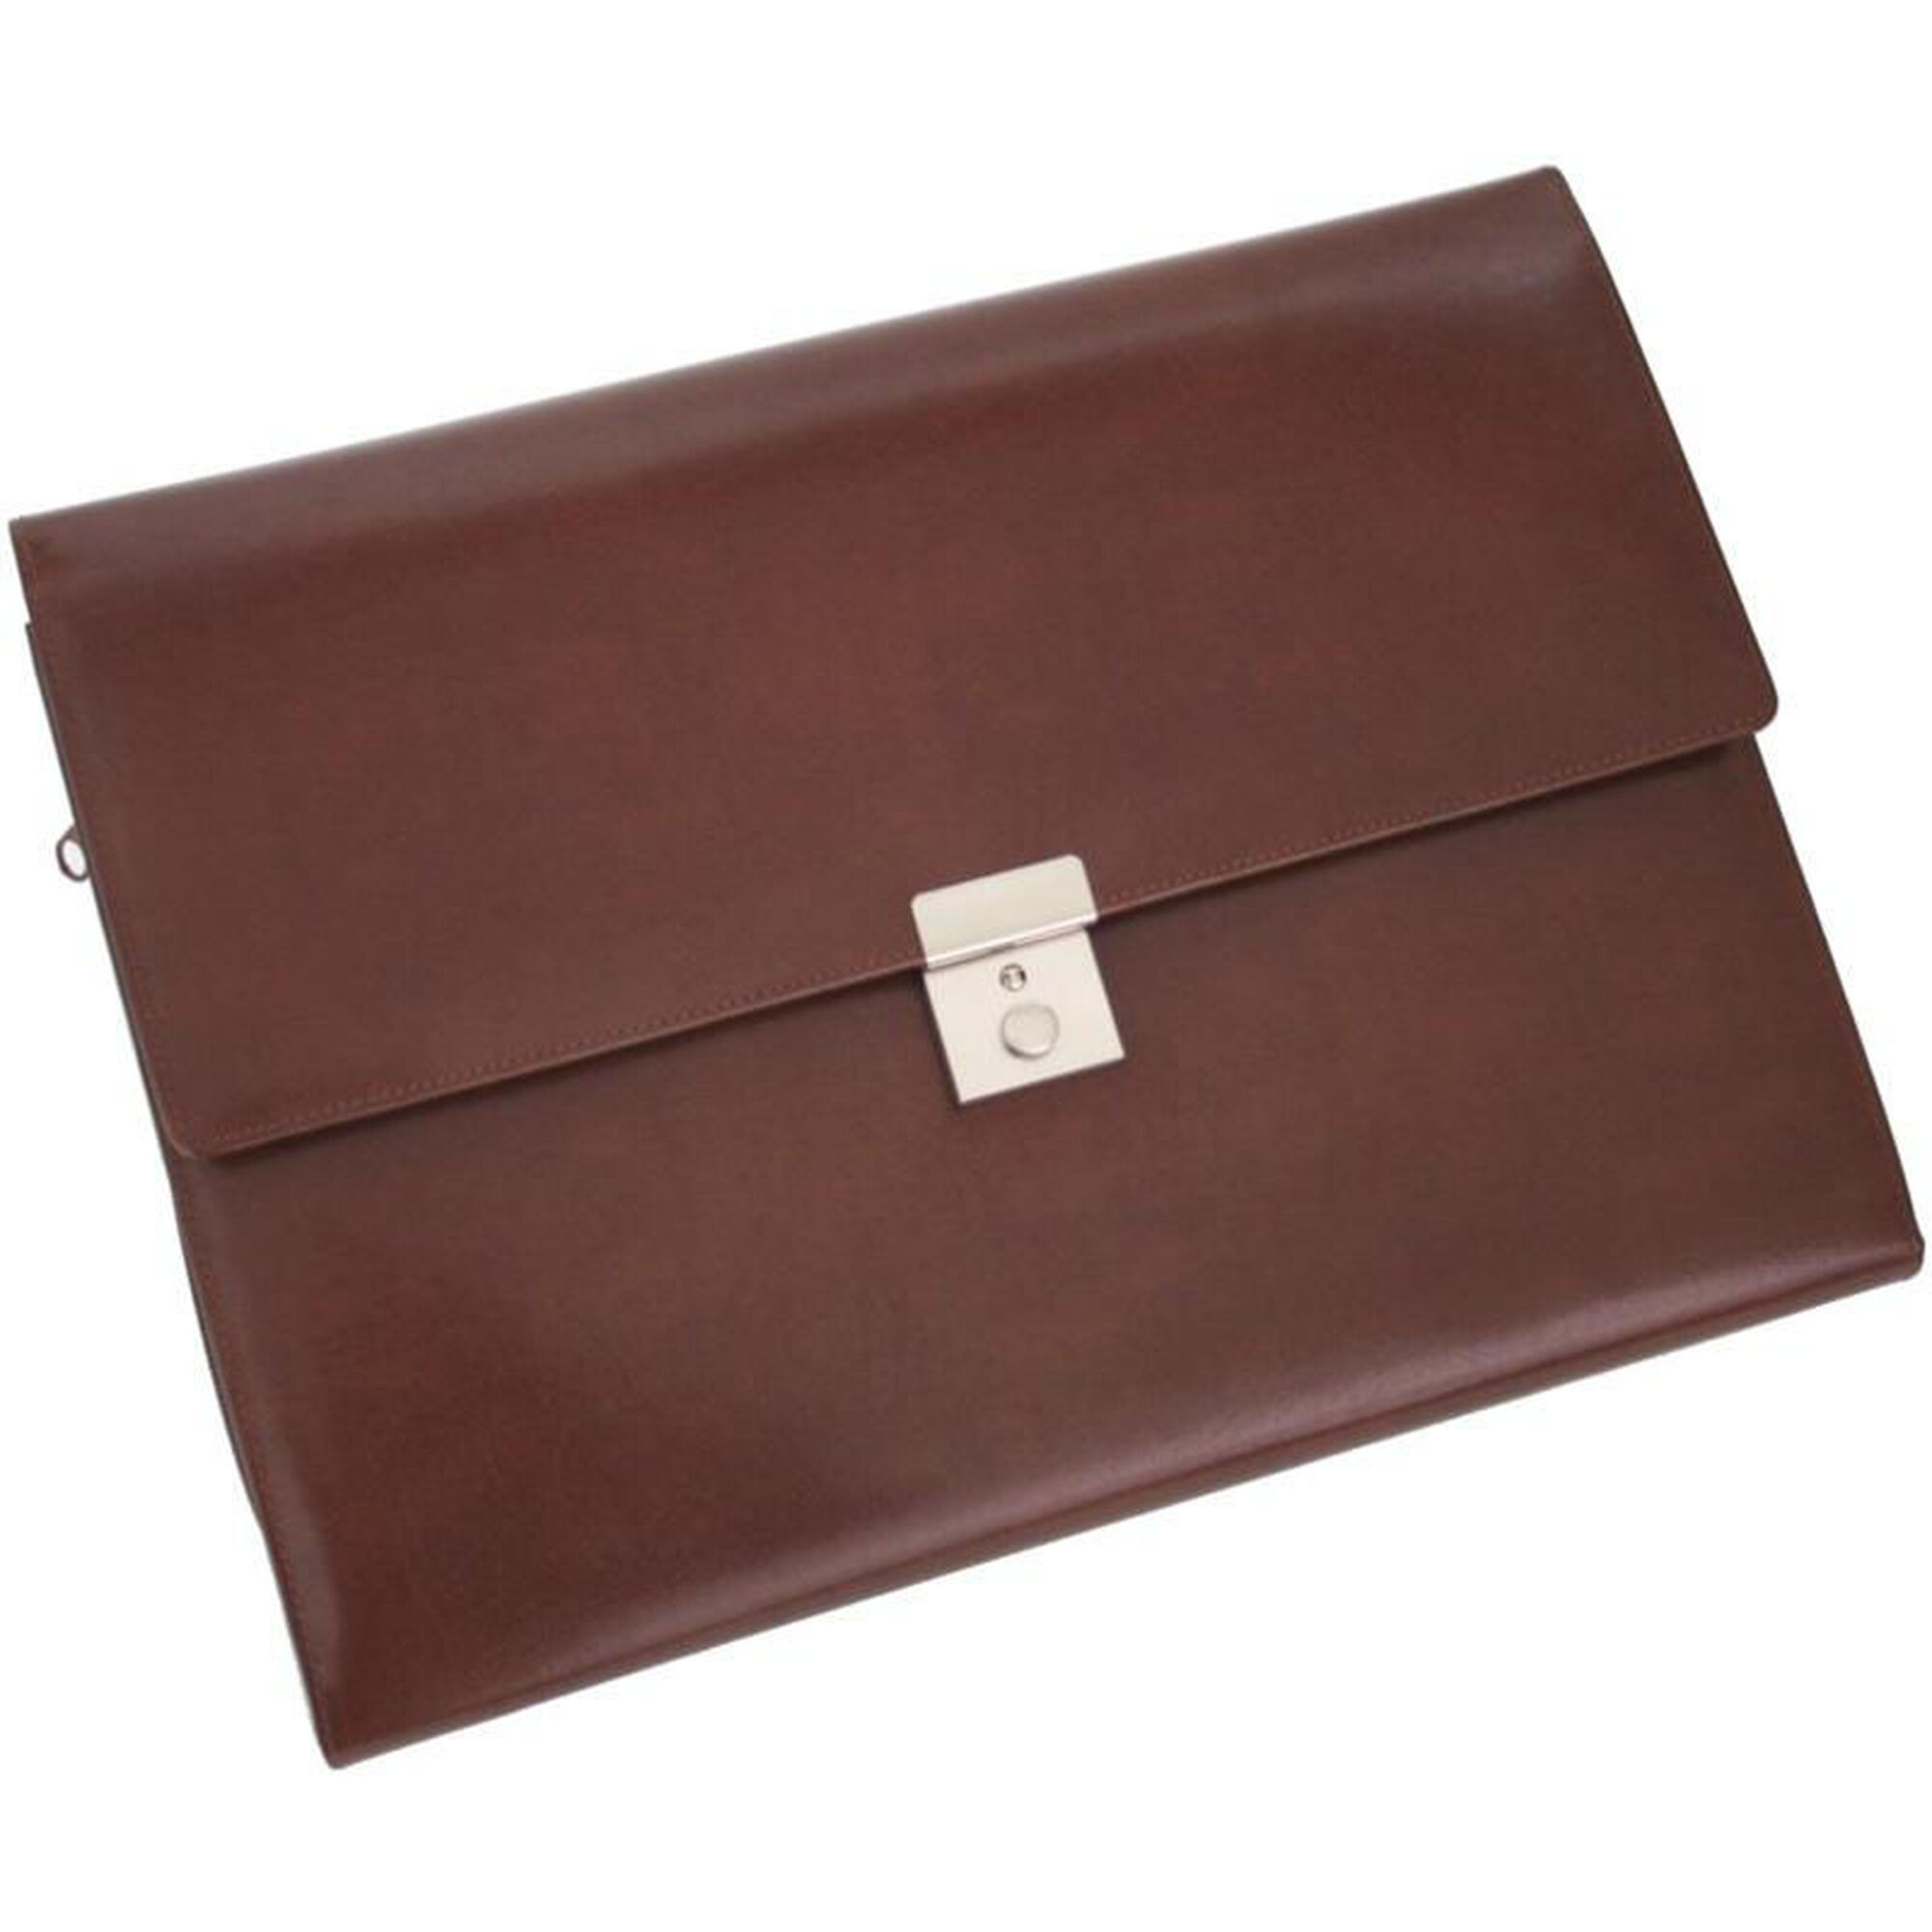 Padfolio File Organizer Leather 750 Bt Ar Accessories 2 Not Included Unless Stated Below